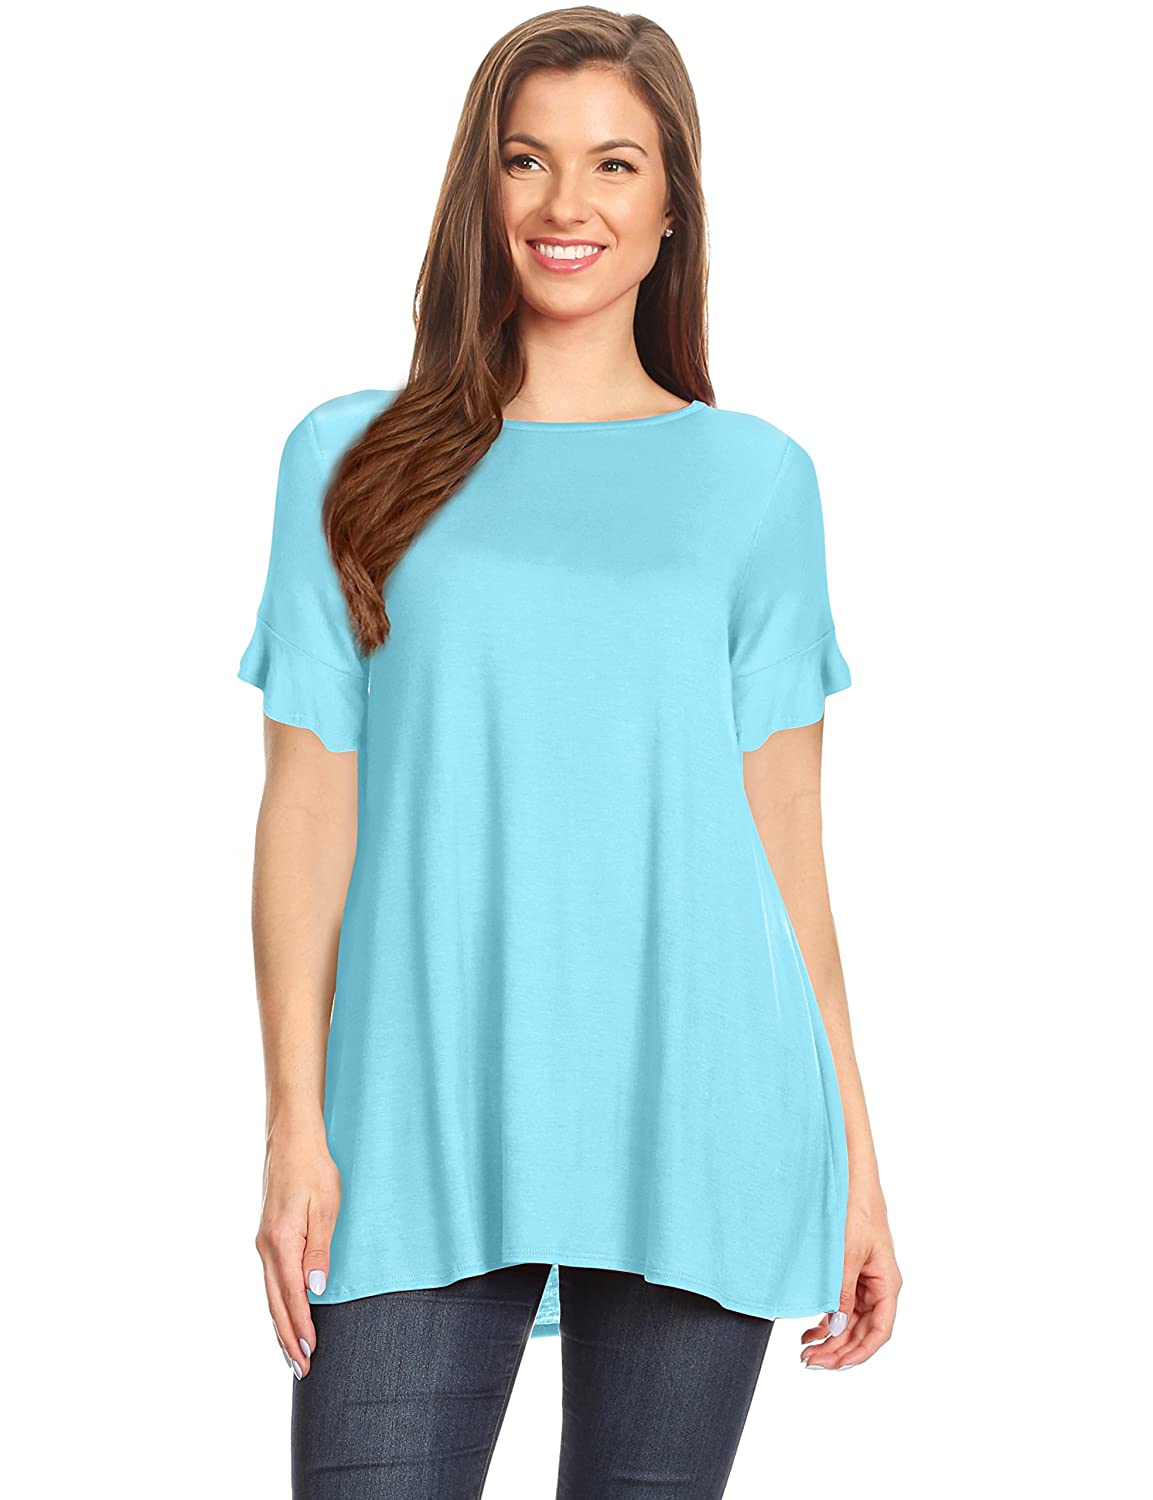 5b1a572ff526b9 QUALITY - These summer Plus Size Tunic for women are composed of a high  quality and durable blend of Rayon and Spandex for a super soft feel ...